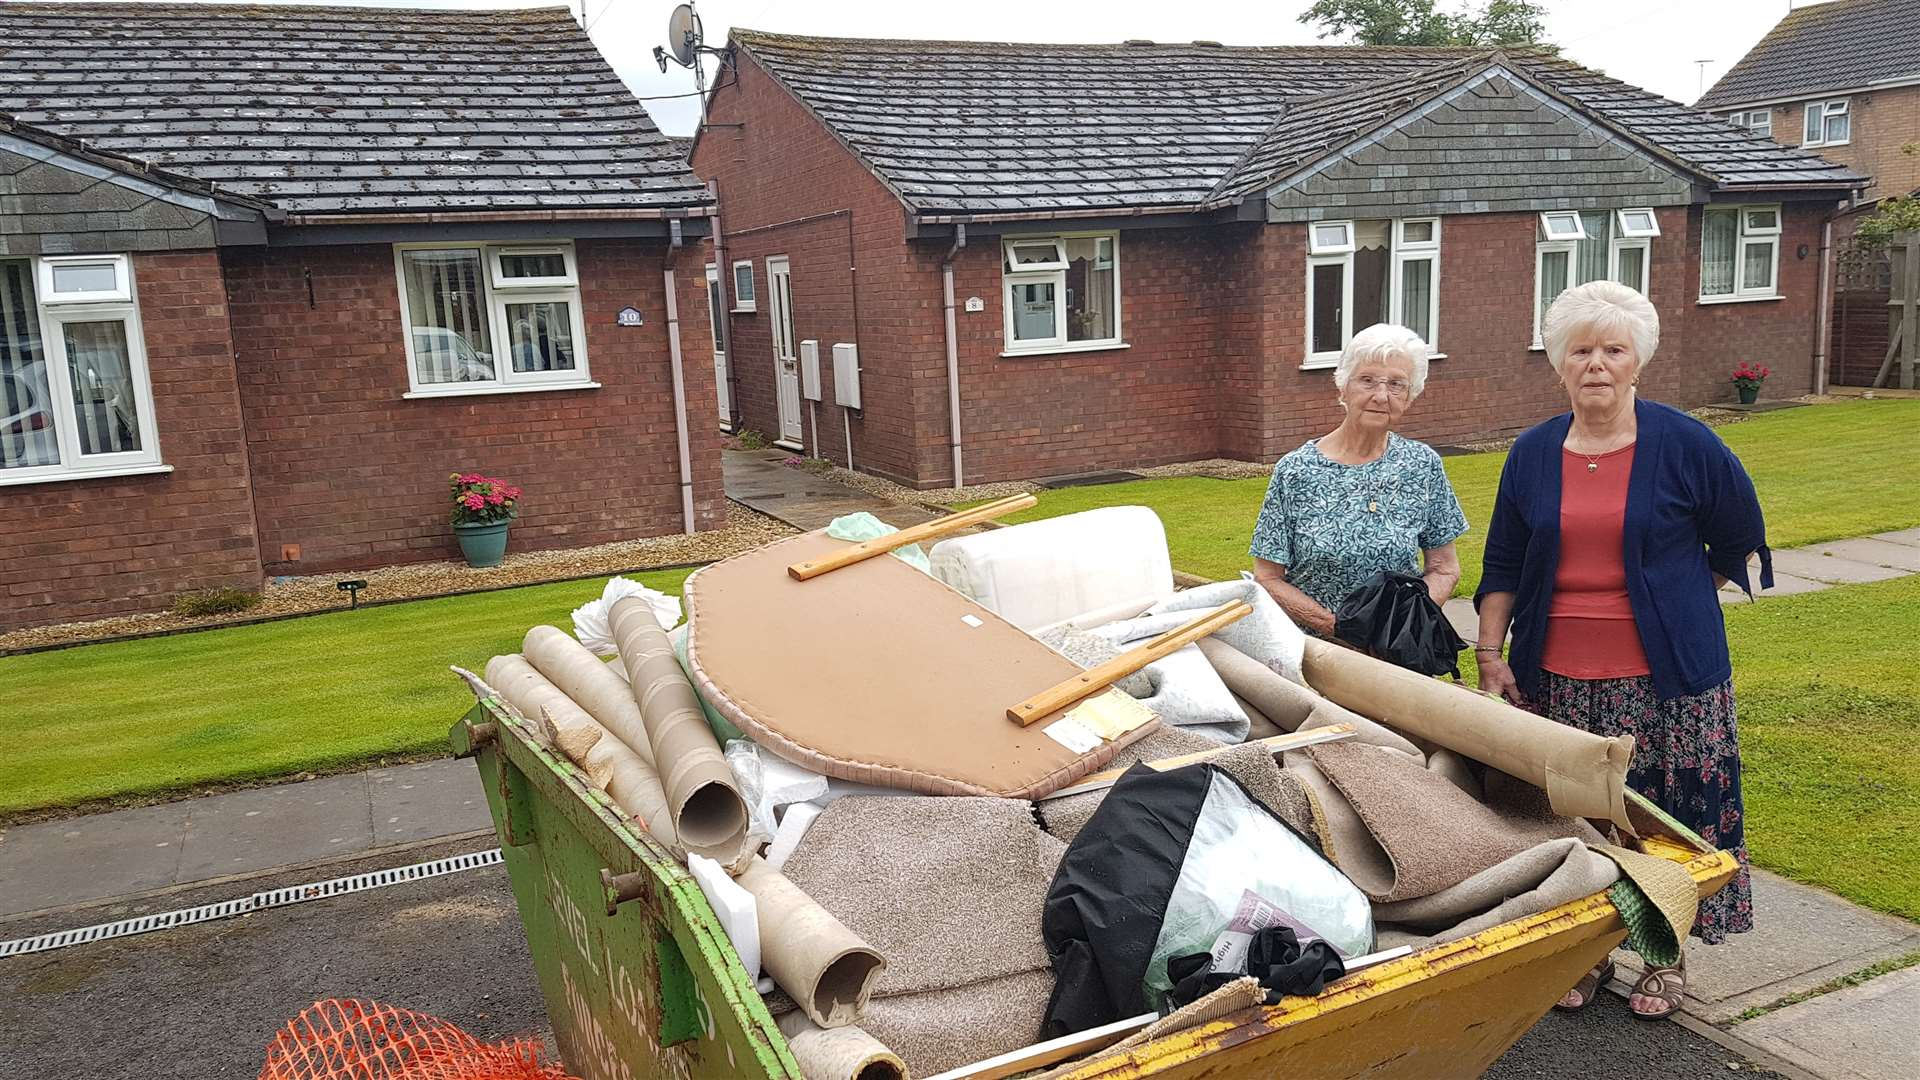 Audrey Forman (left) and Marian Johnson outside their homes in Lyndis Walk, with a skip full of waste and dumped property. (13581206)